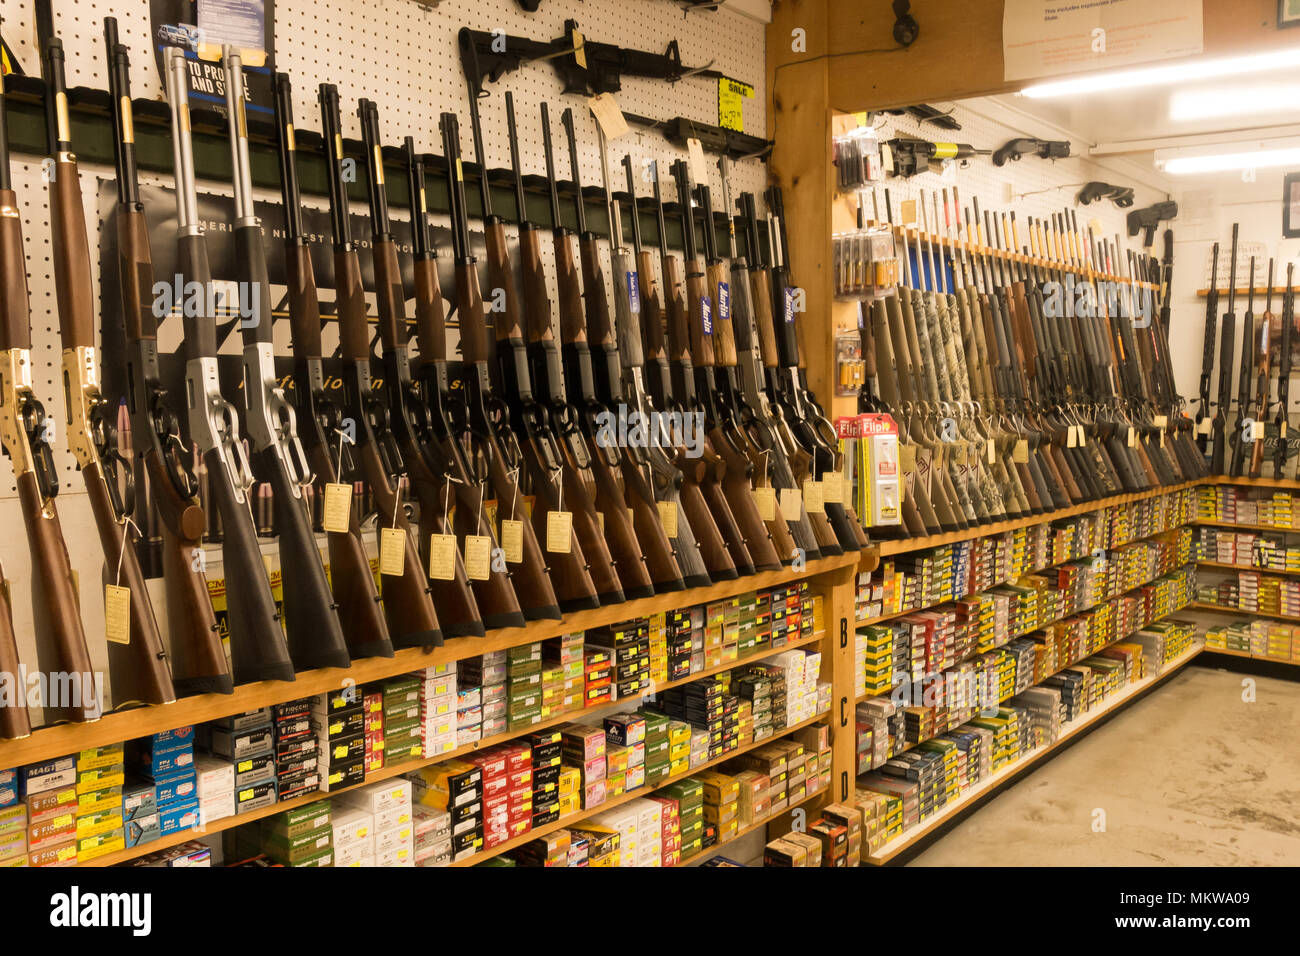 A display of rifles and ammunition in a gun shop in the Adirondack Mountains, NY USAStock Photo